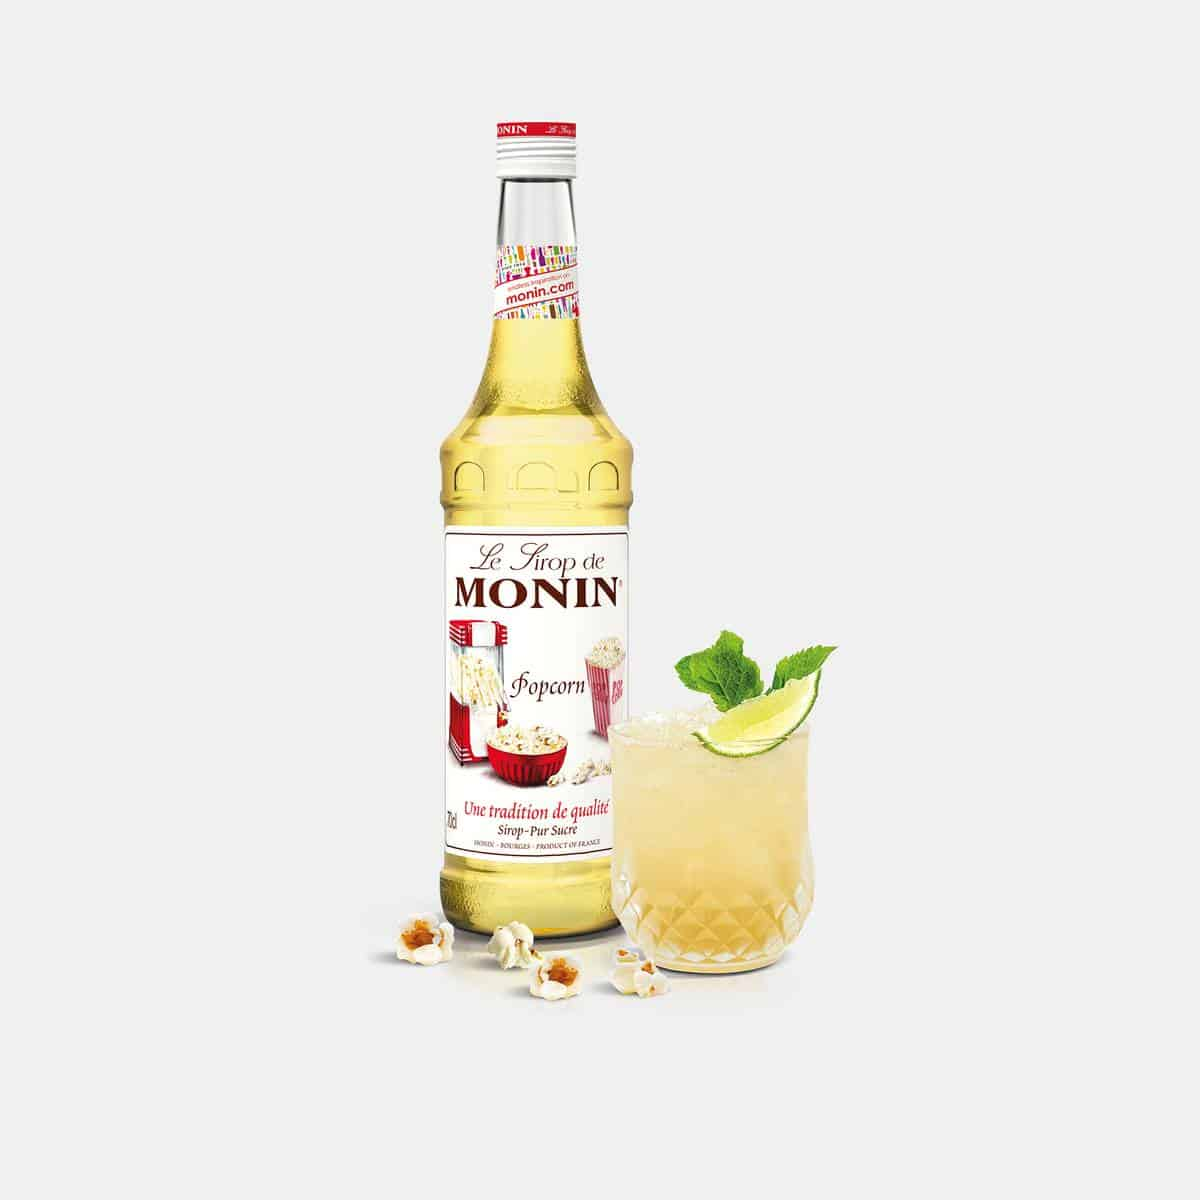 Monin 700ml Popcorn Syrup with Drink Application